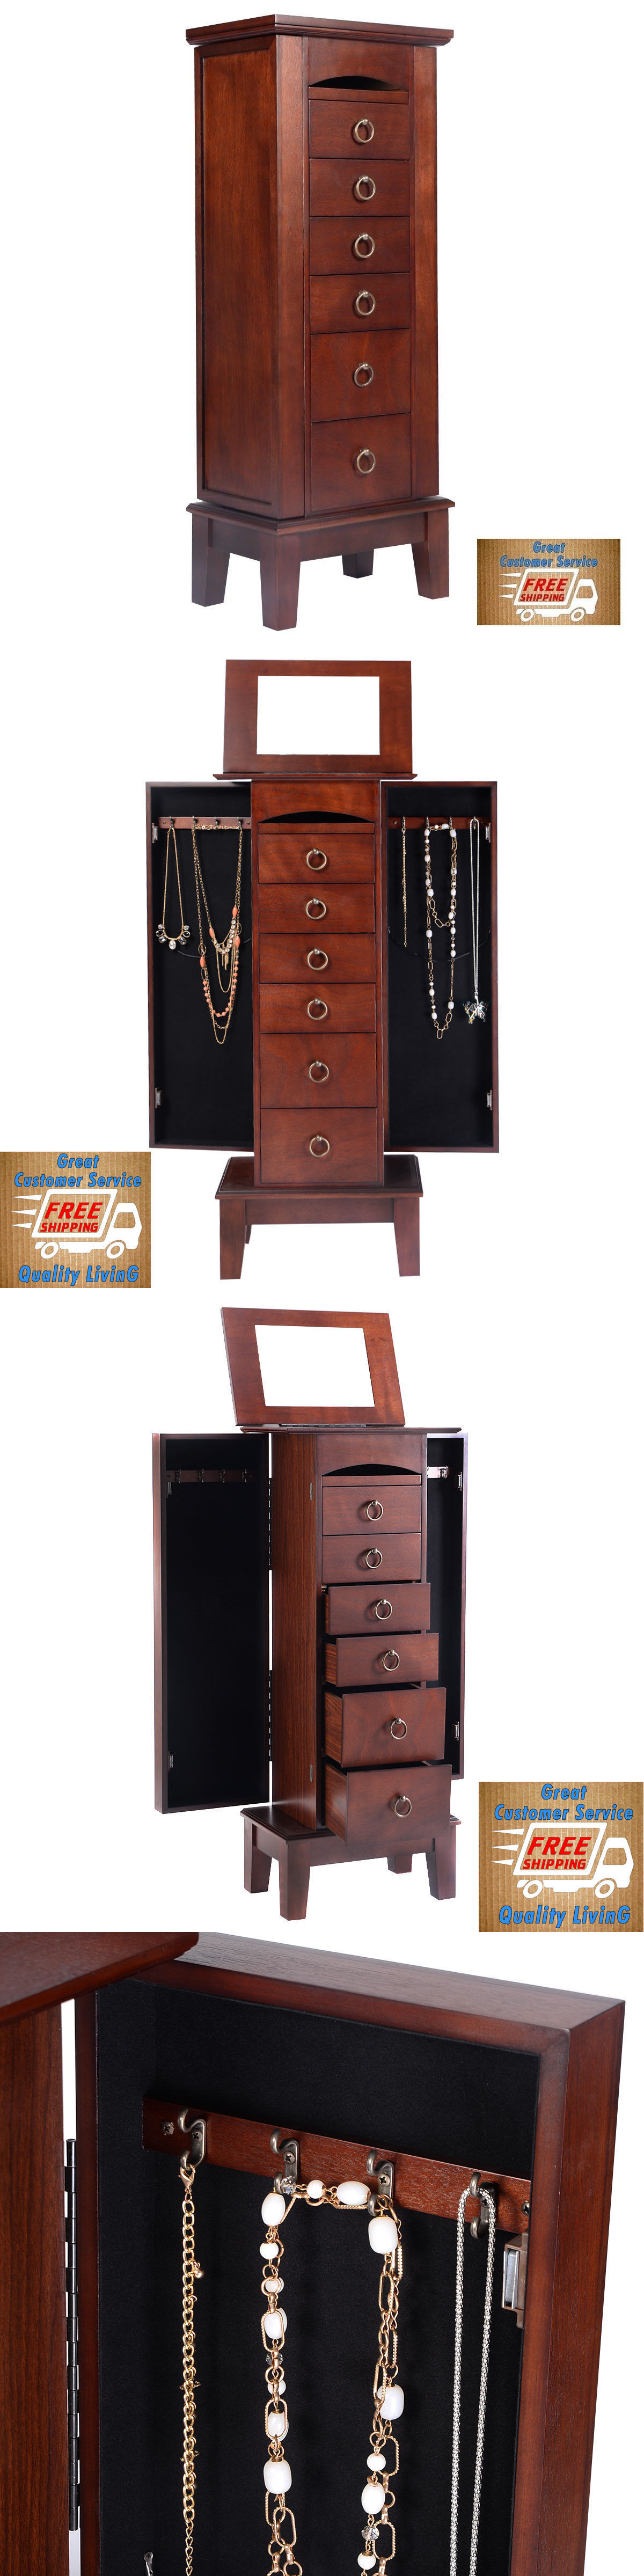 Jewelry Boxes 3820 Wood Jewelry Cabinet Vintage Armoire Box Storage